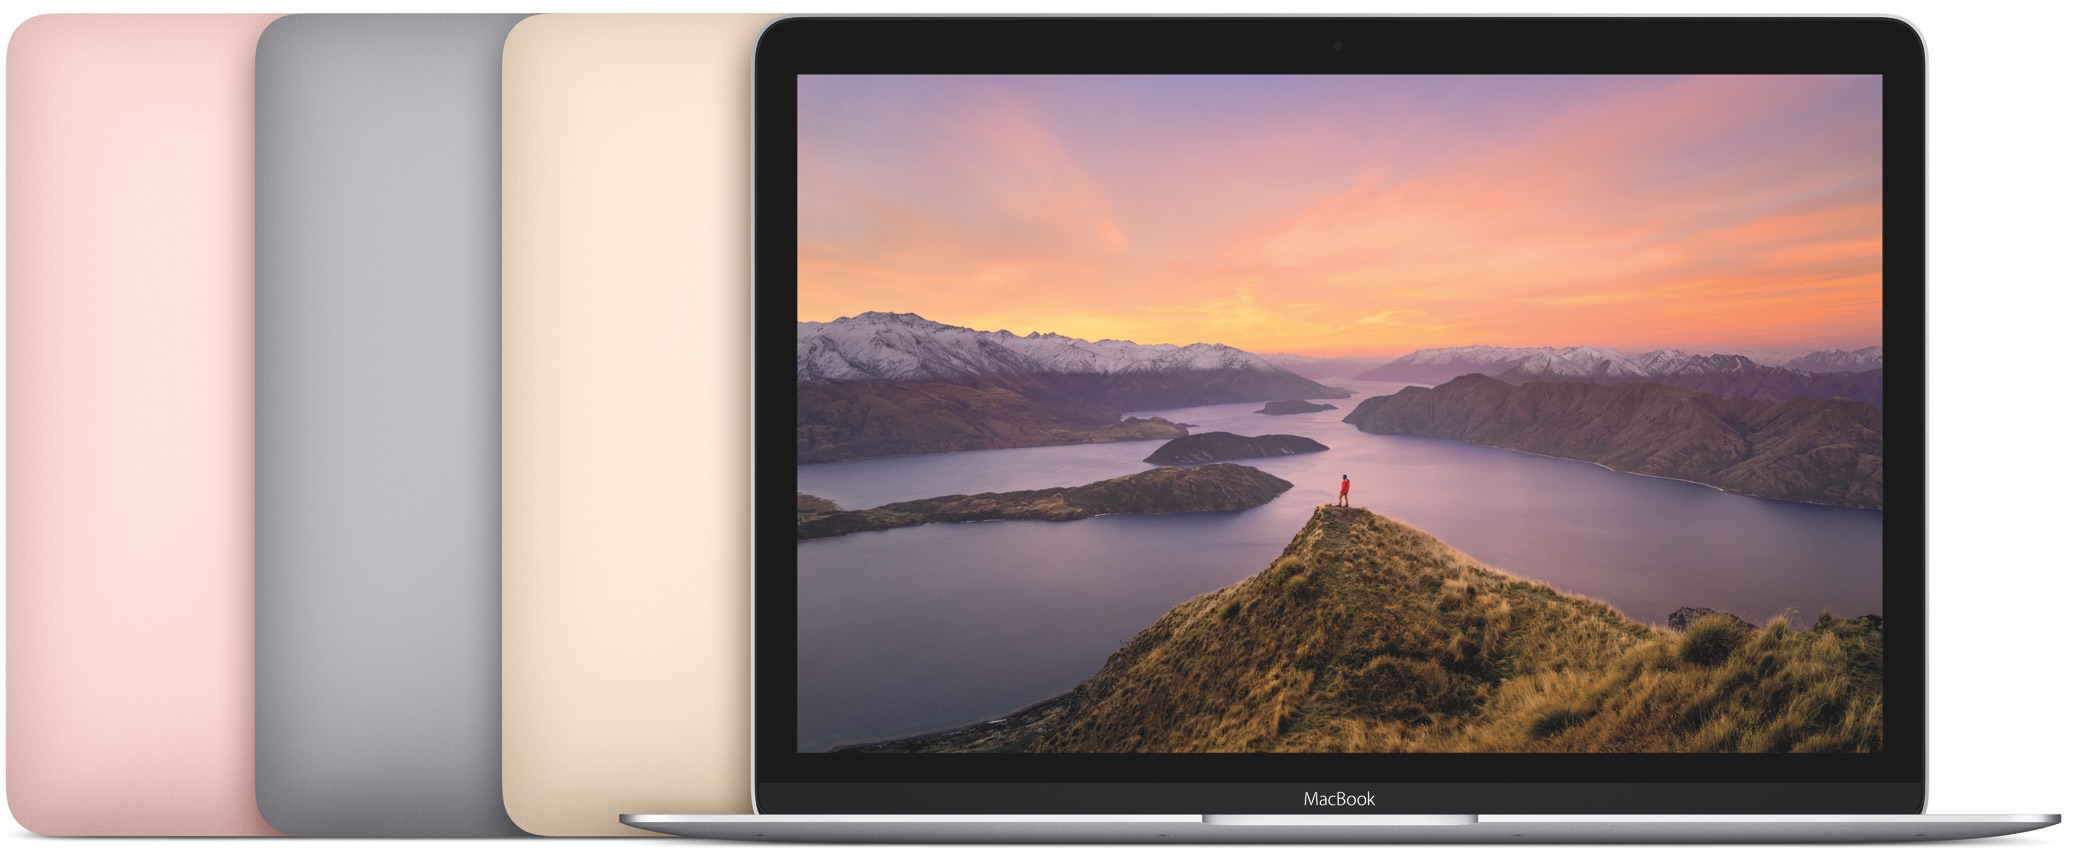 MacBook-twelve-inch-early-2016-family-image-002